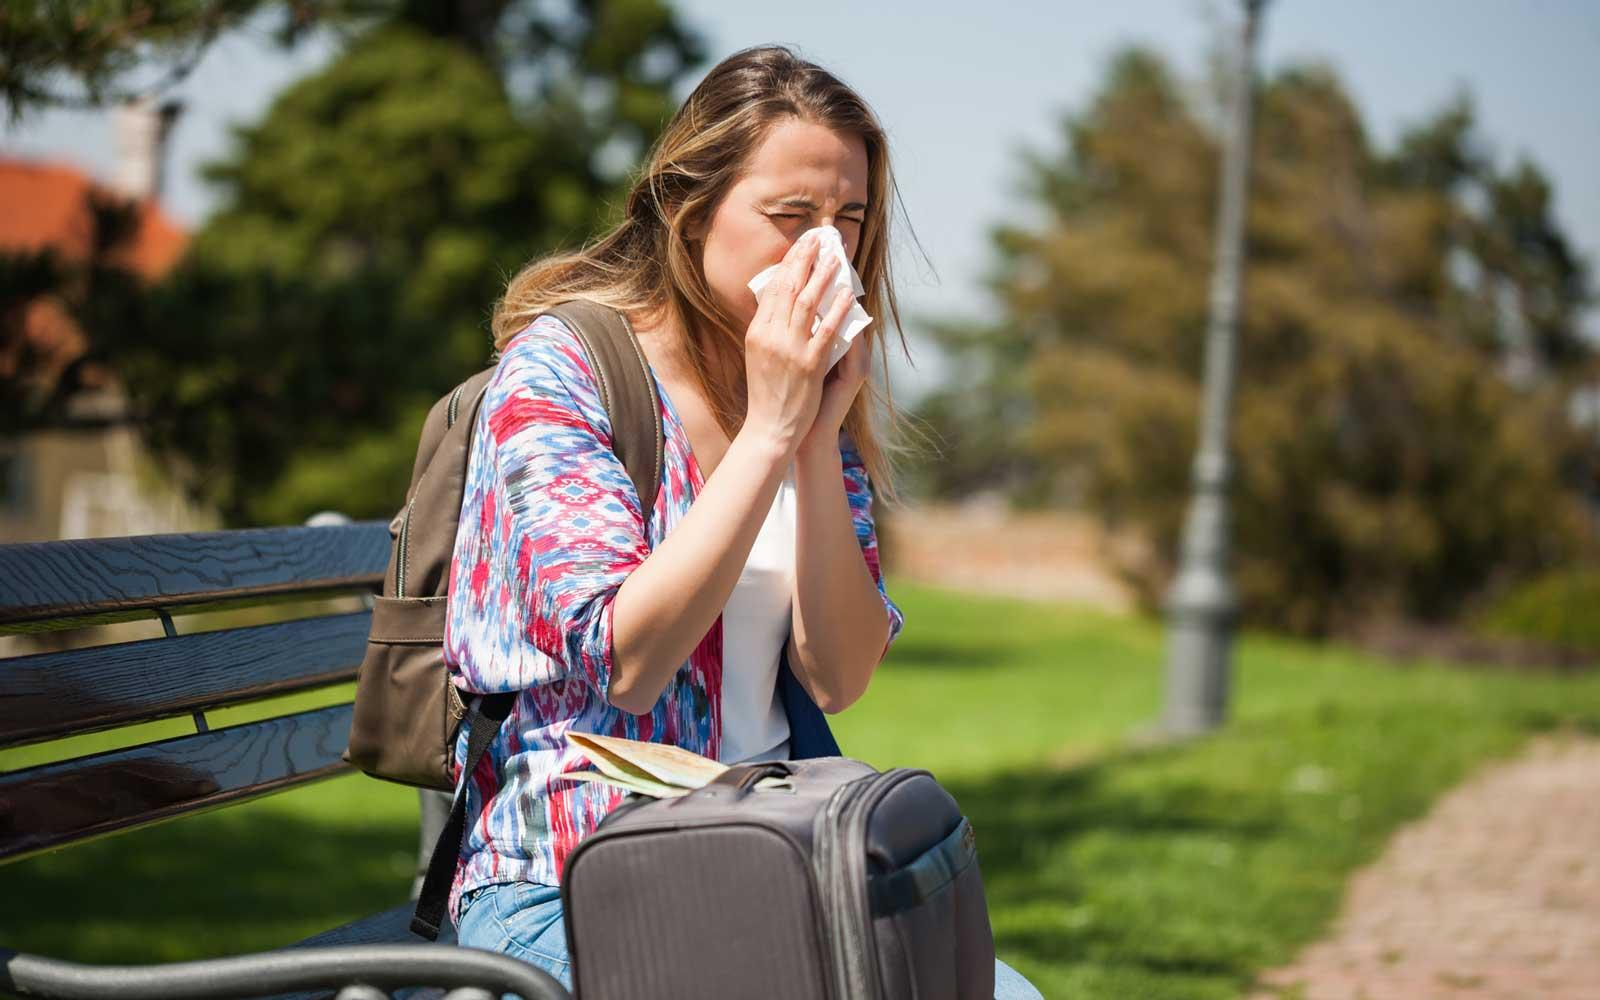 How To Prevent Yourself from Getting Sick While On a Trip